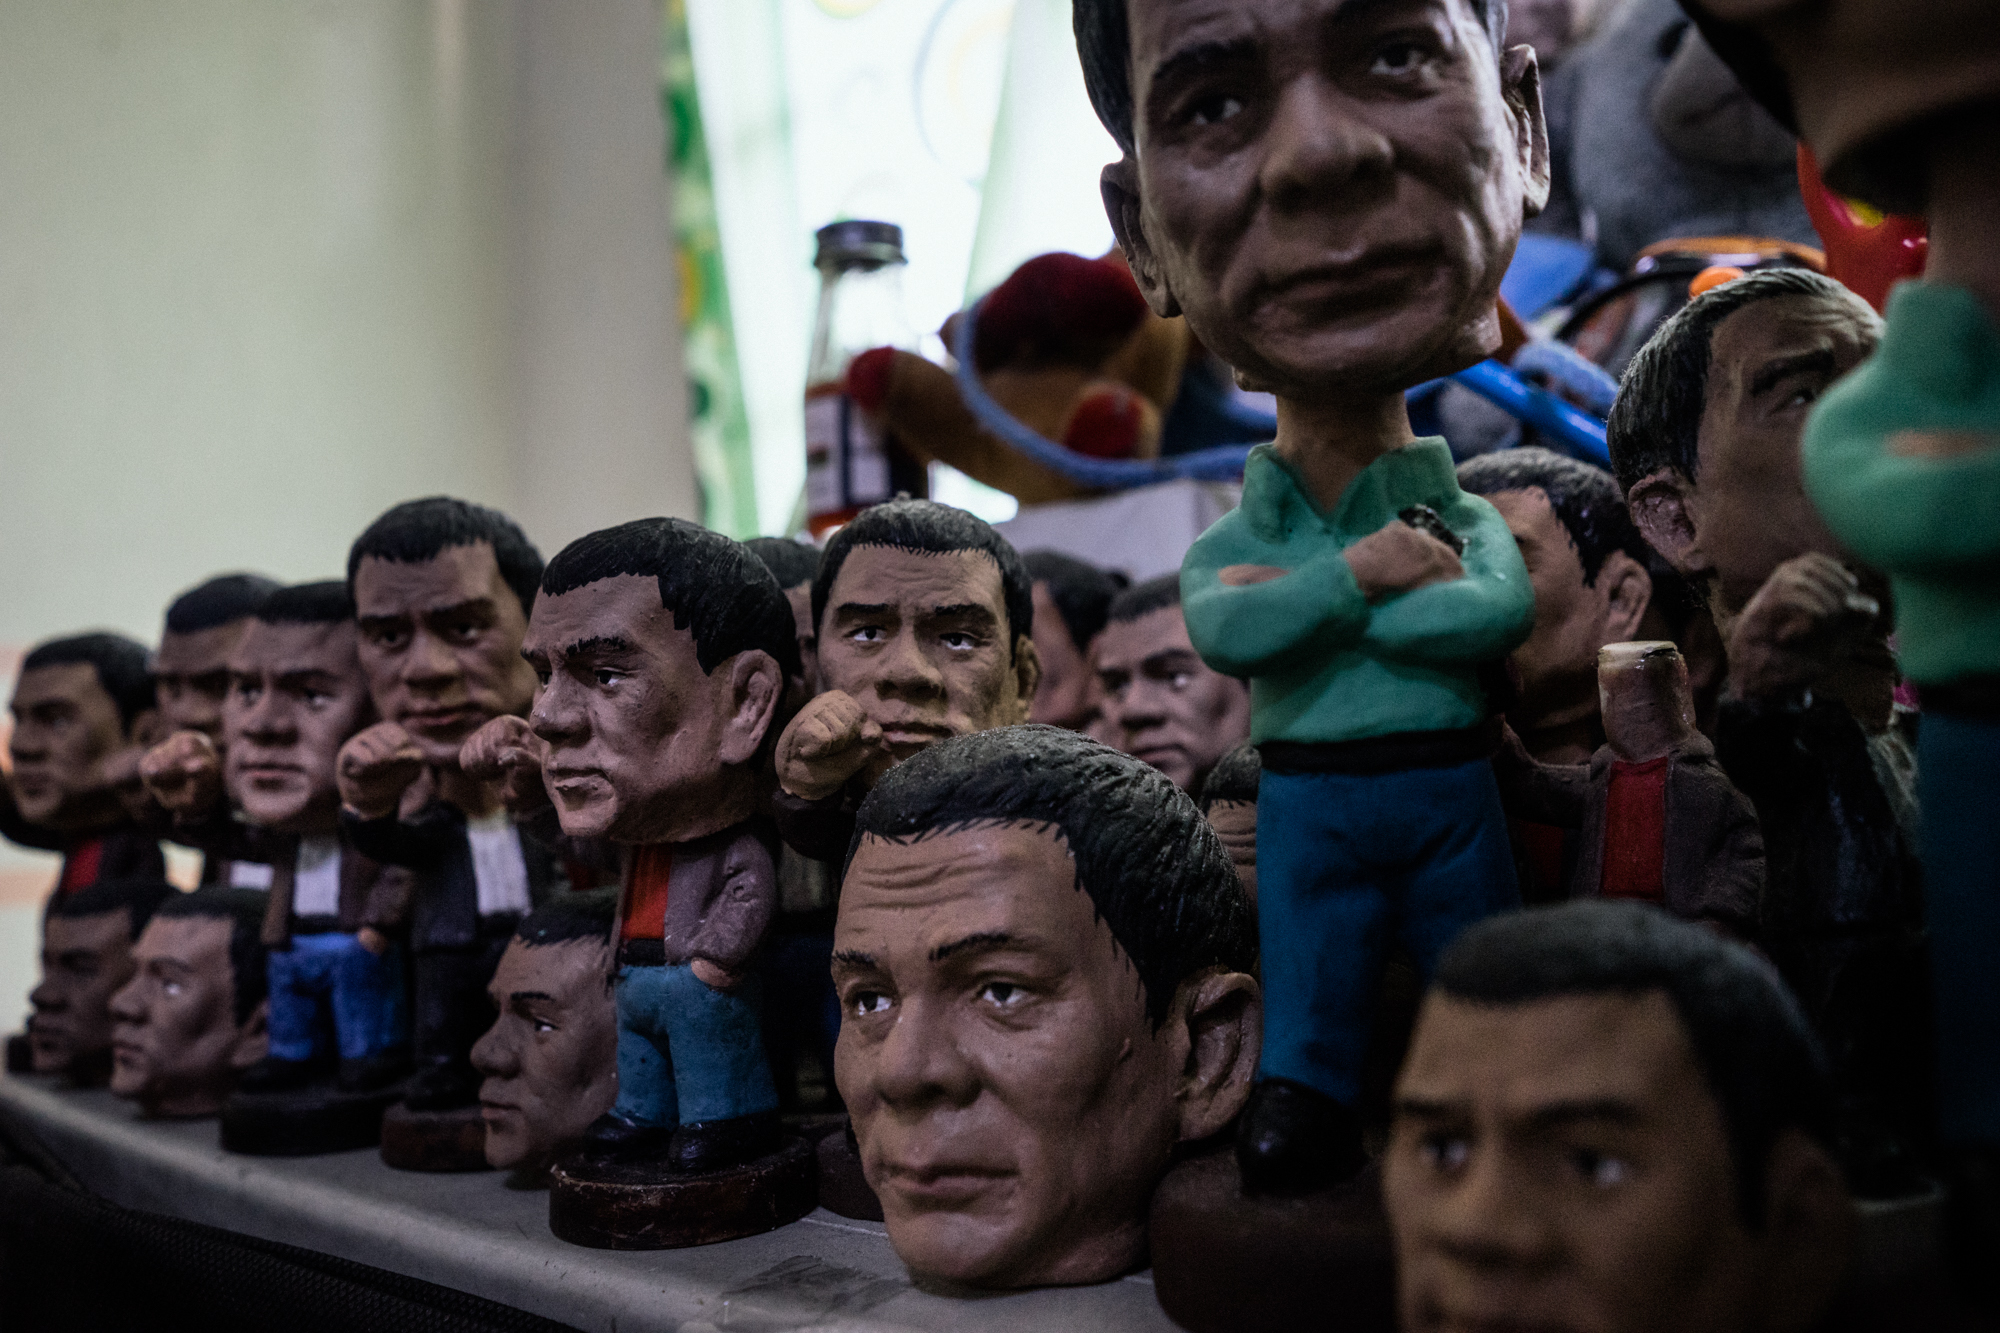 'Bobble Head' dolls of President Rodrigo Duterte are seen in the home of a supporter.